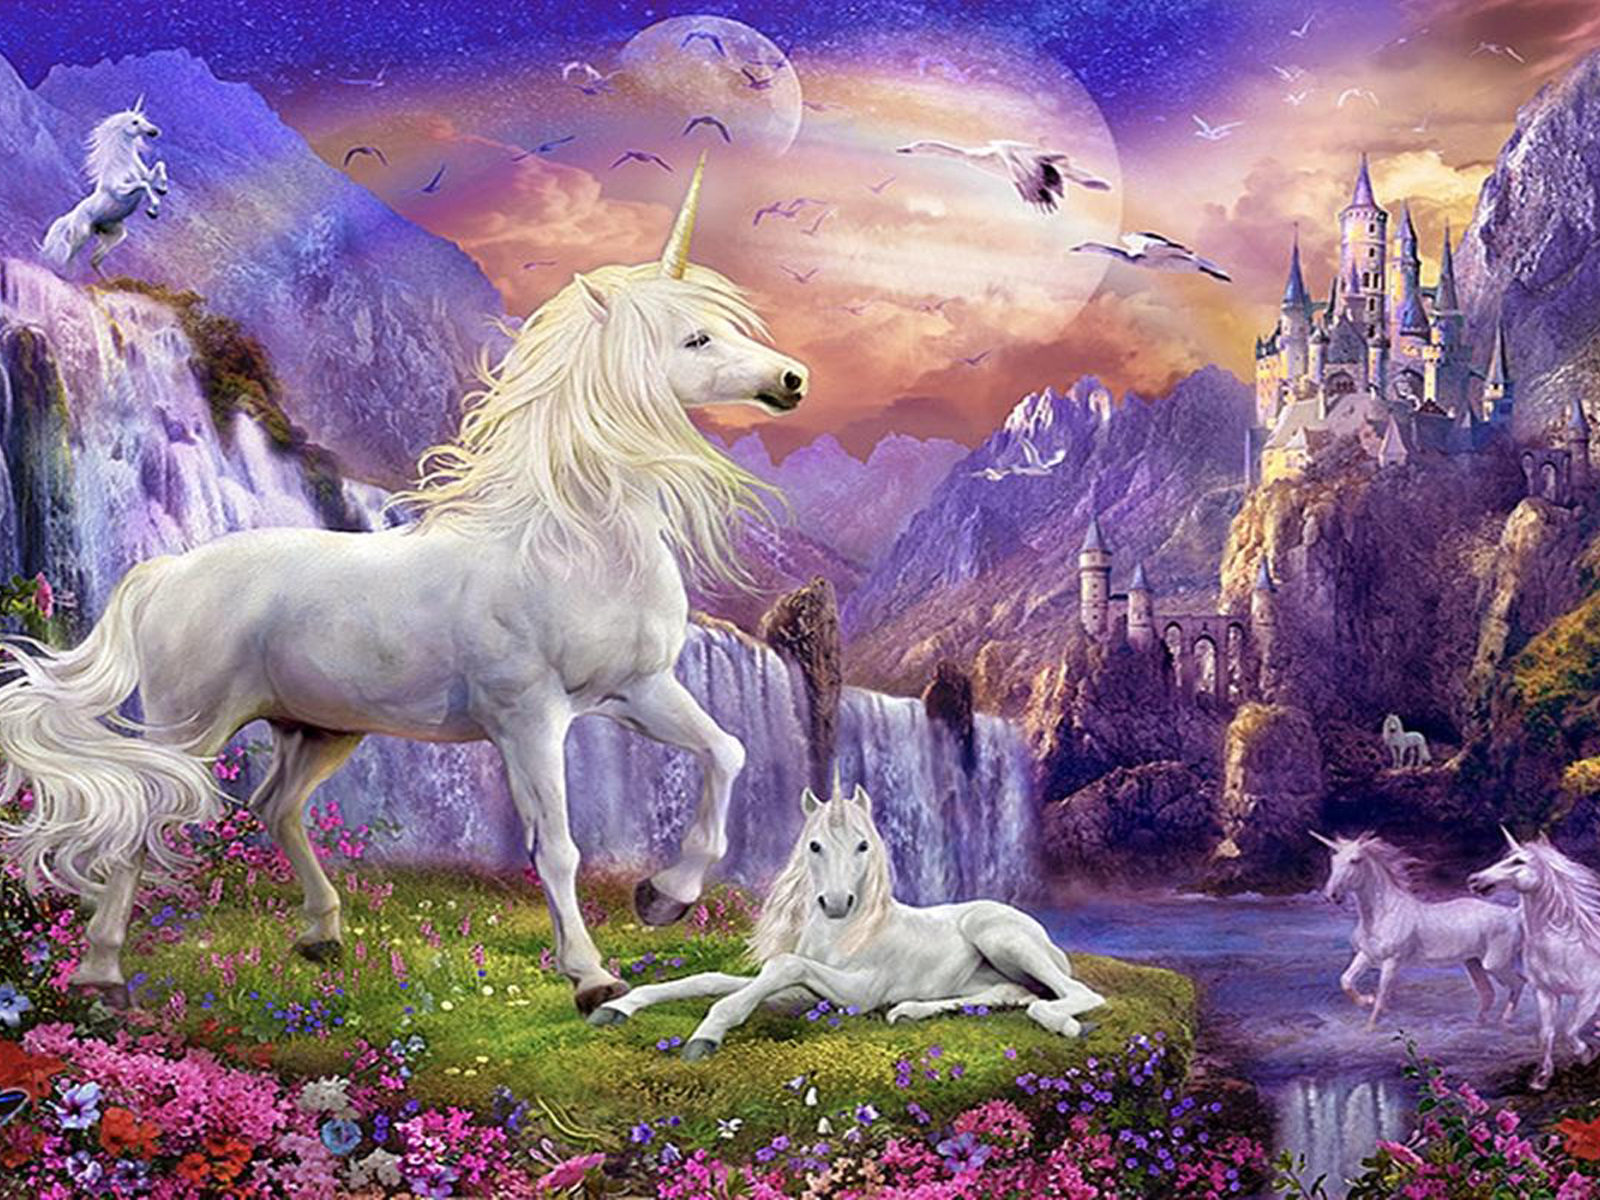 Green Animal Wallpaper Fantasy Wallpaper Hd Unicorns Horse Castles Waterfalls